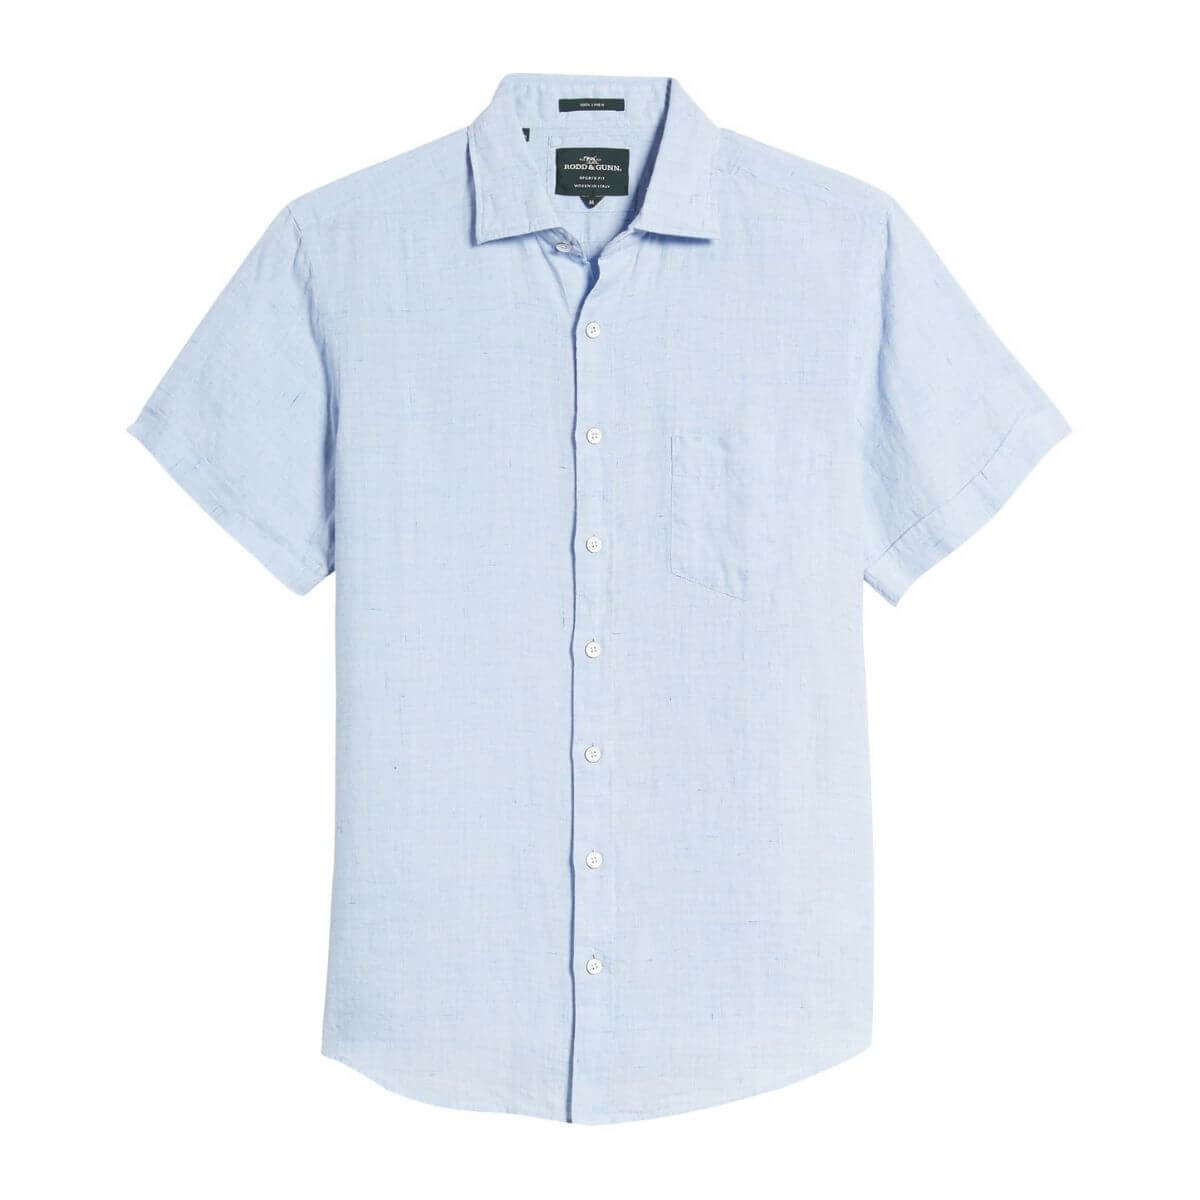 Light blue linen button-down shirt.